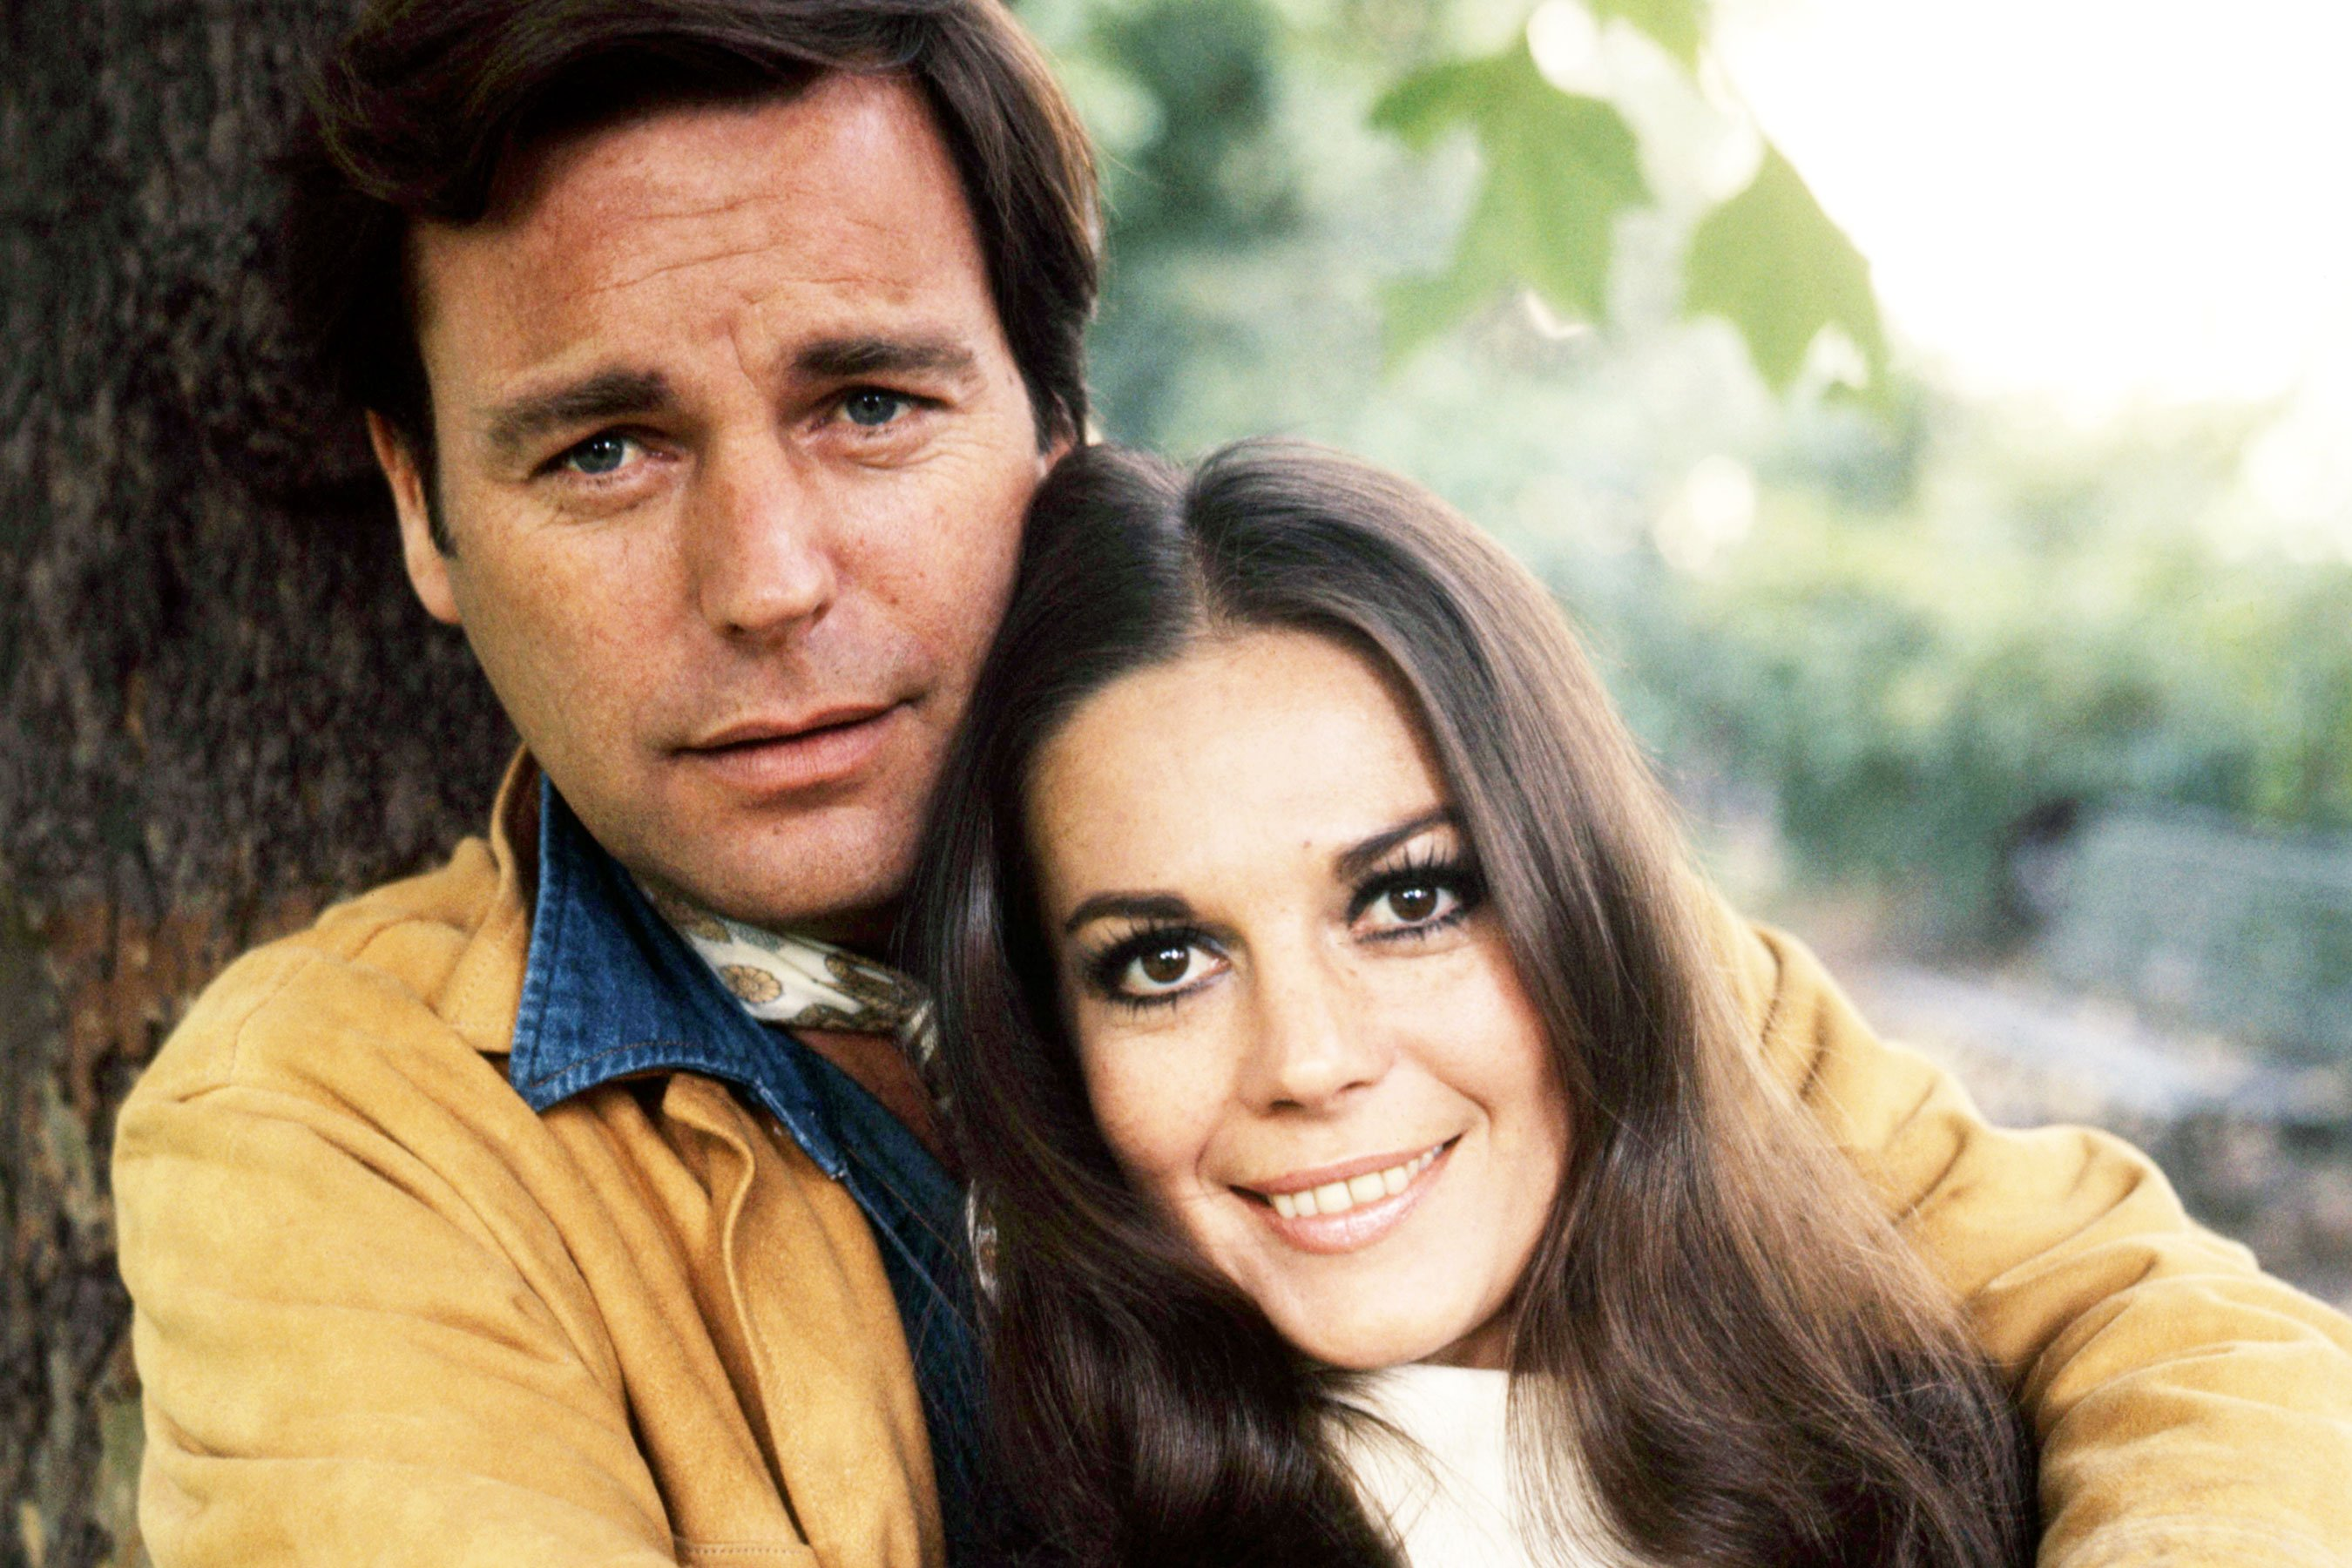 Robert Wagner named a person of interest in Natalie Wood's death